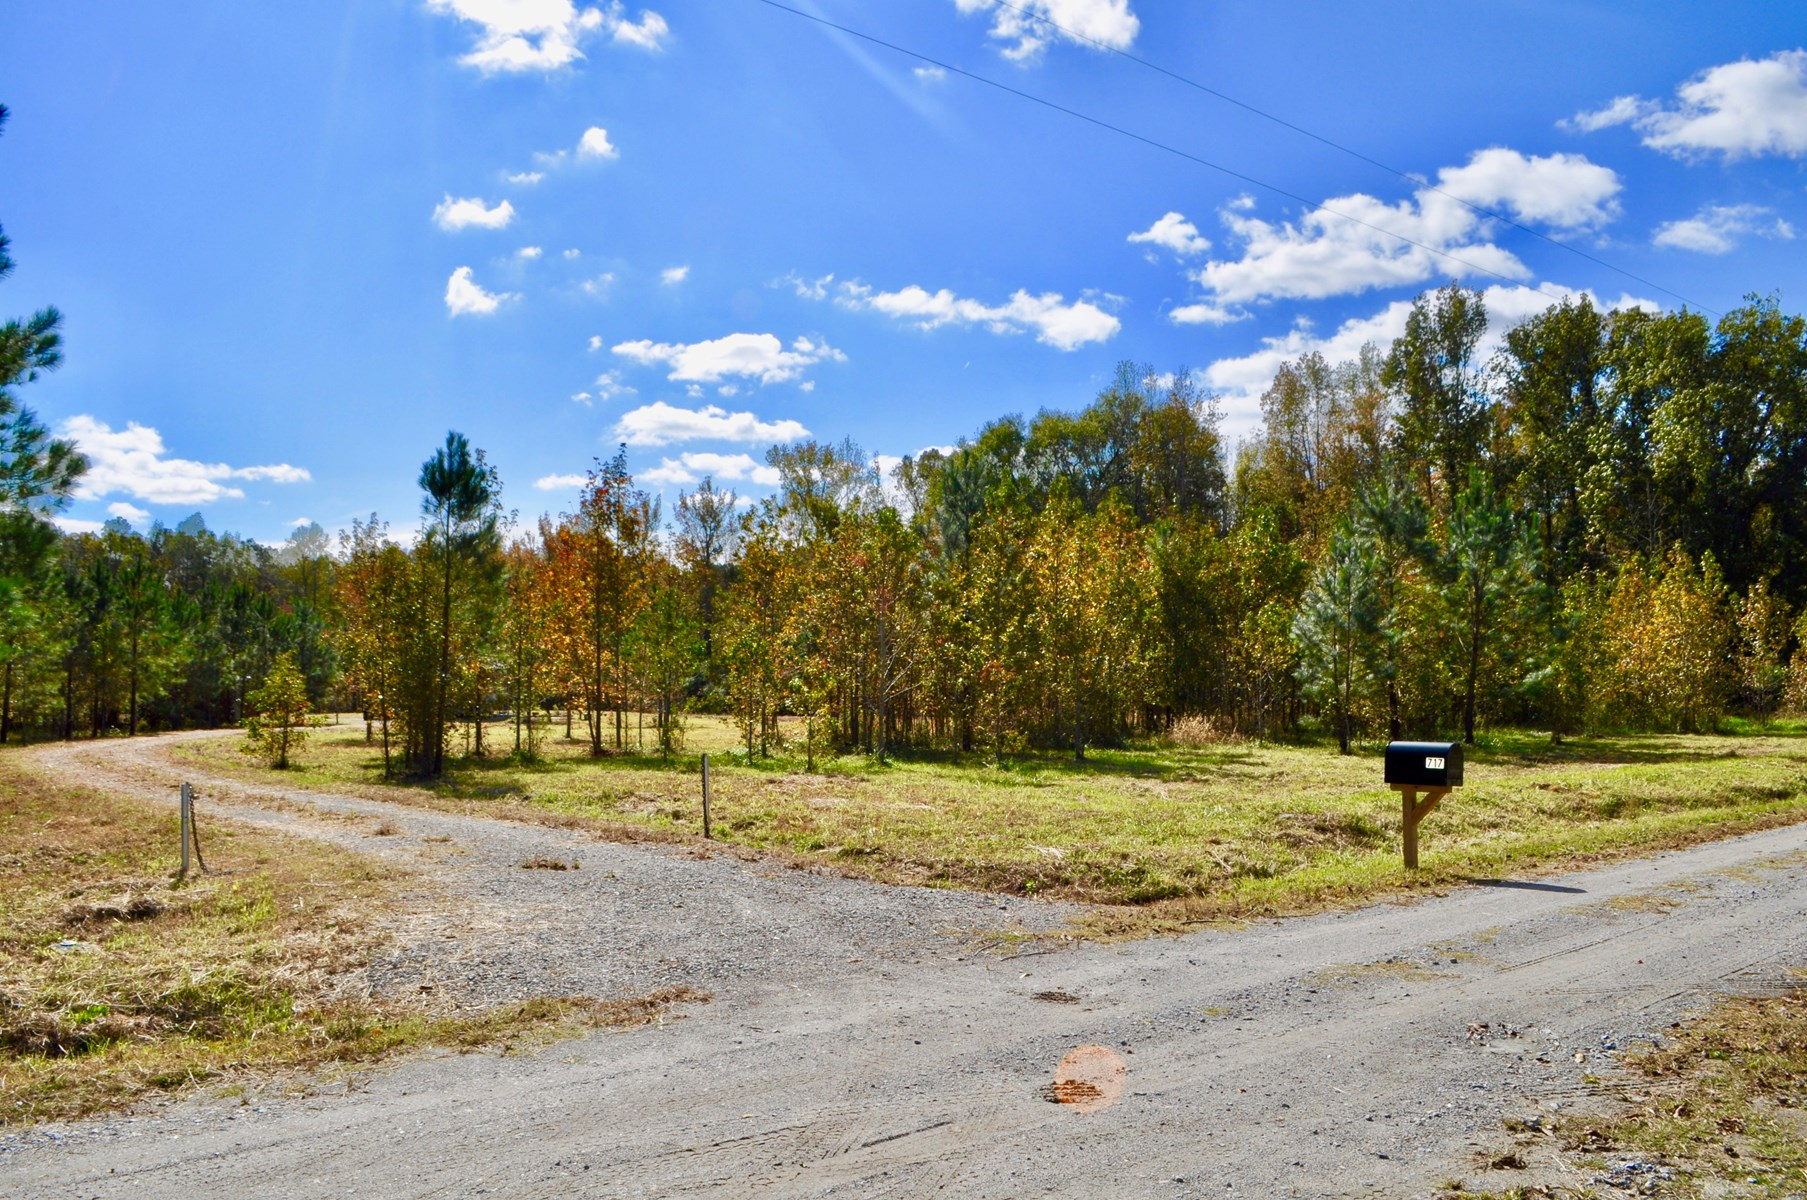 Land for sale in Beaufort County, NC/Residential